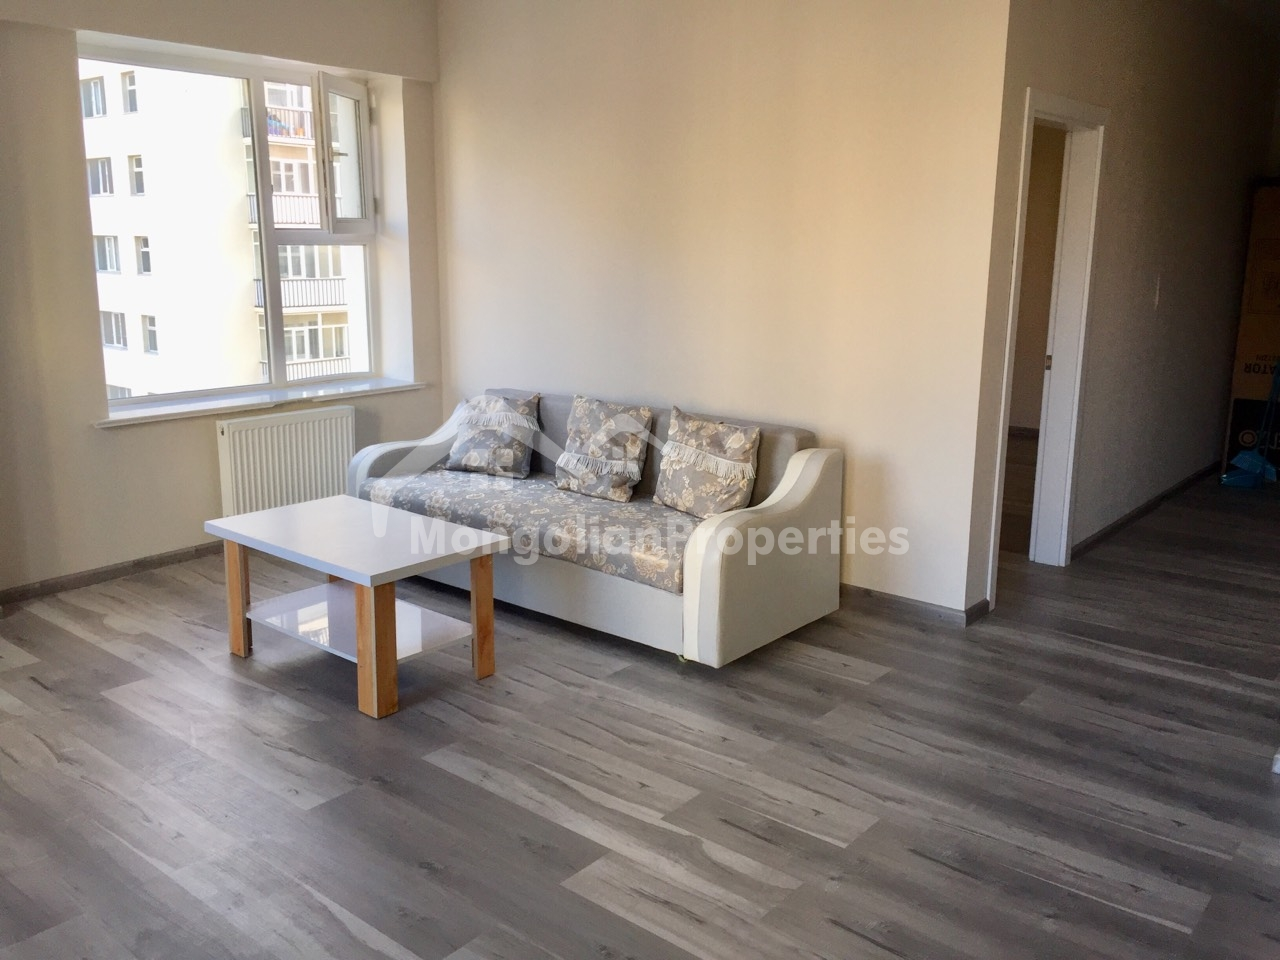 FOR RENT: VERY NEW, COZY 1 BEDROOM APARTMENT IN EMBASSY AREA